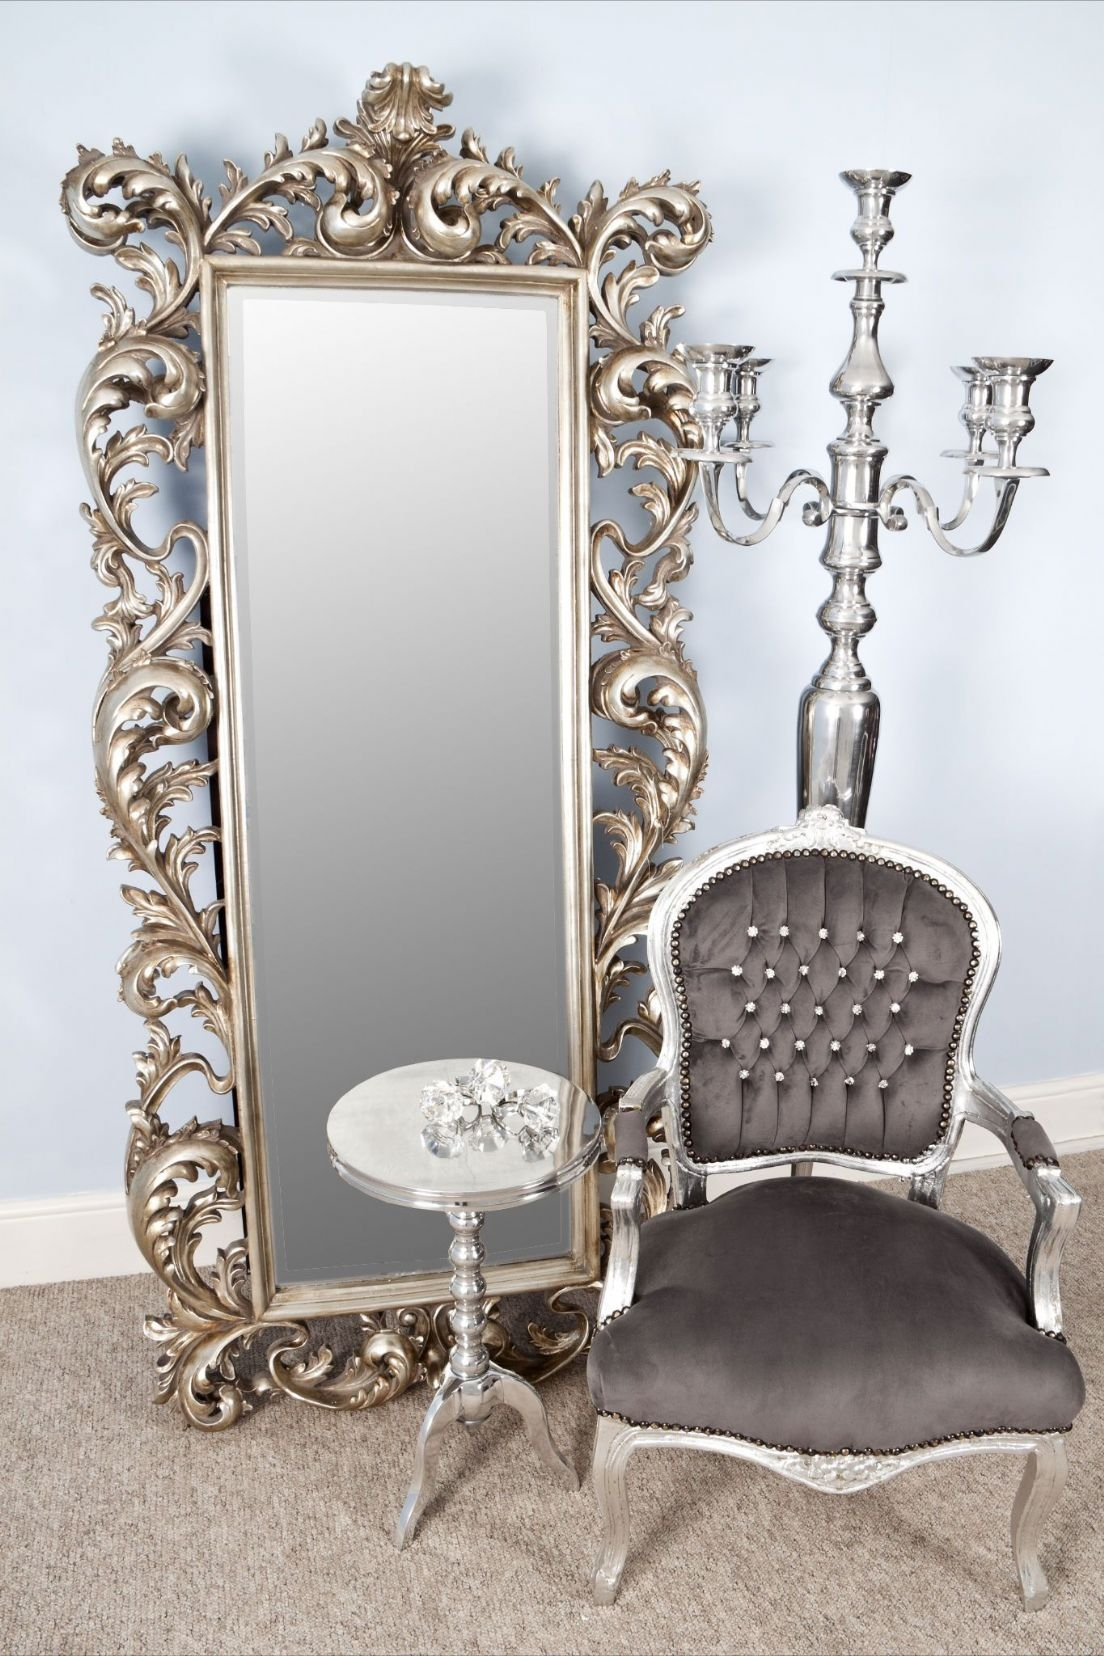 Bedroom Furniture Standing Mirror Black Mirror Antique Wall Inside Vintage Wall Mirrors For Sale (Image 5 of 15)